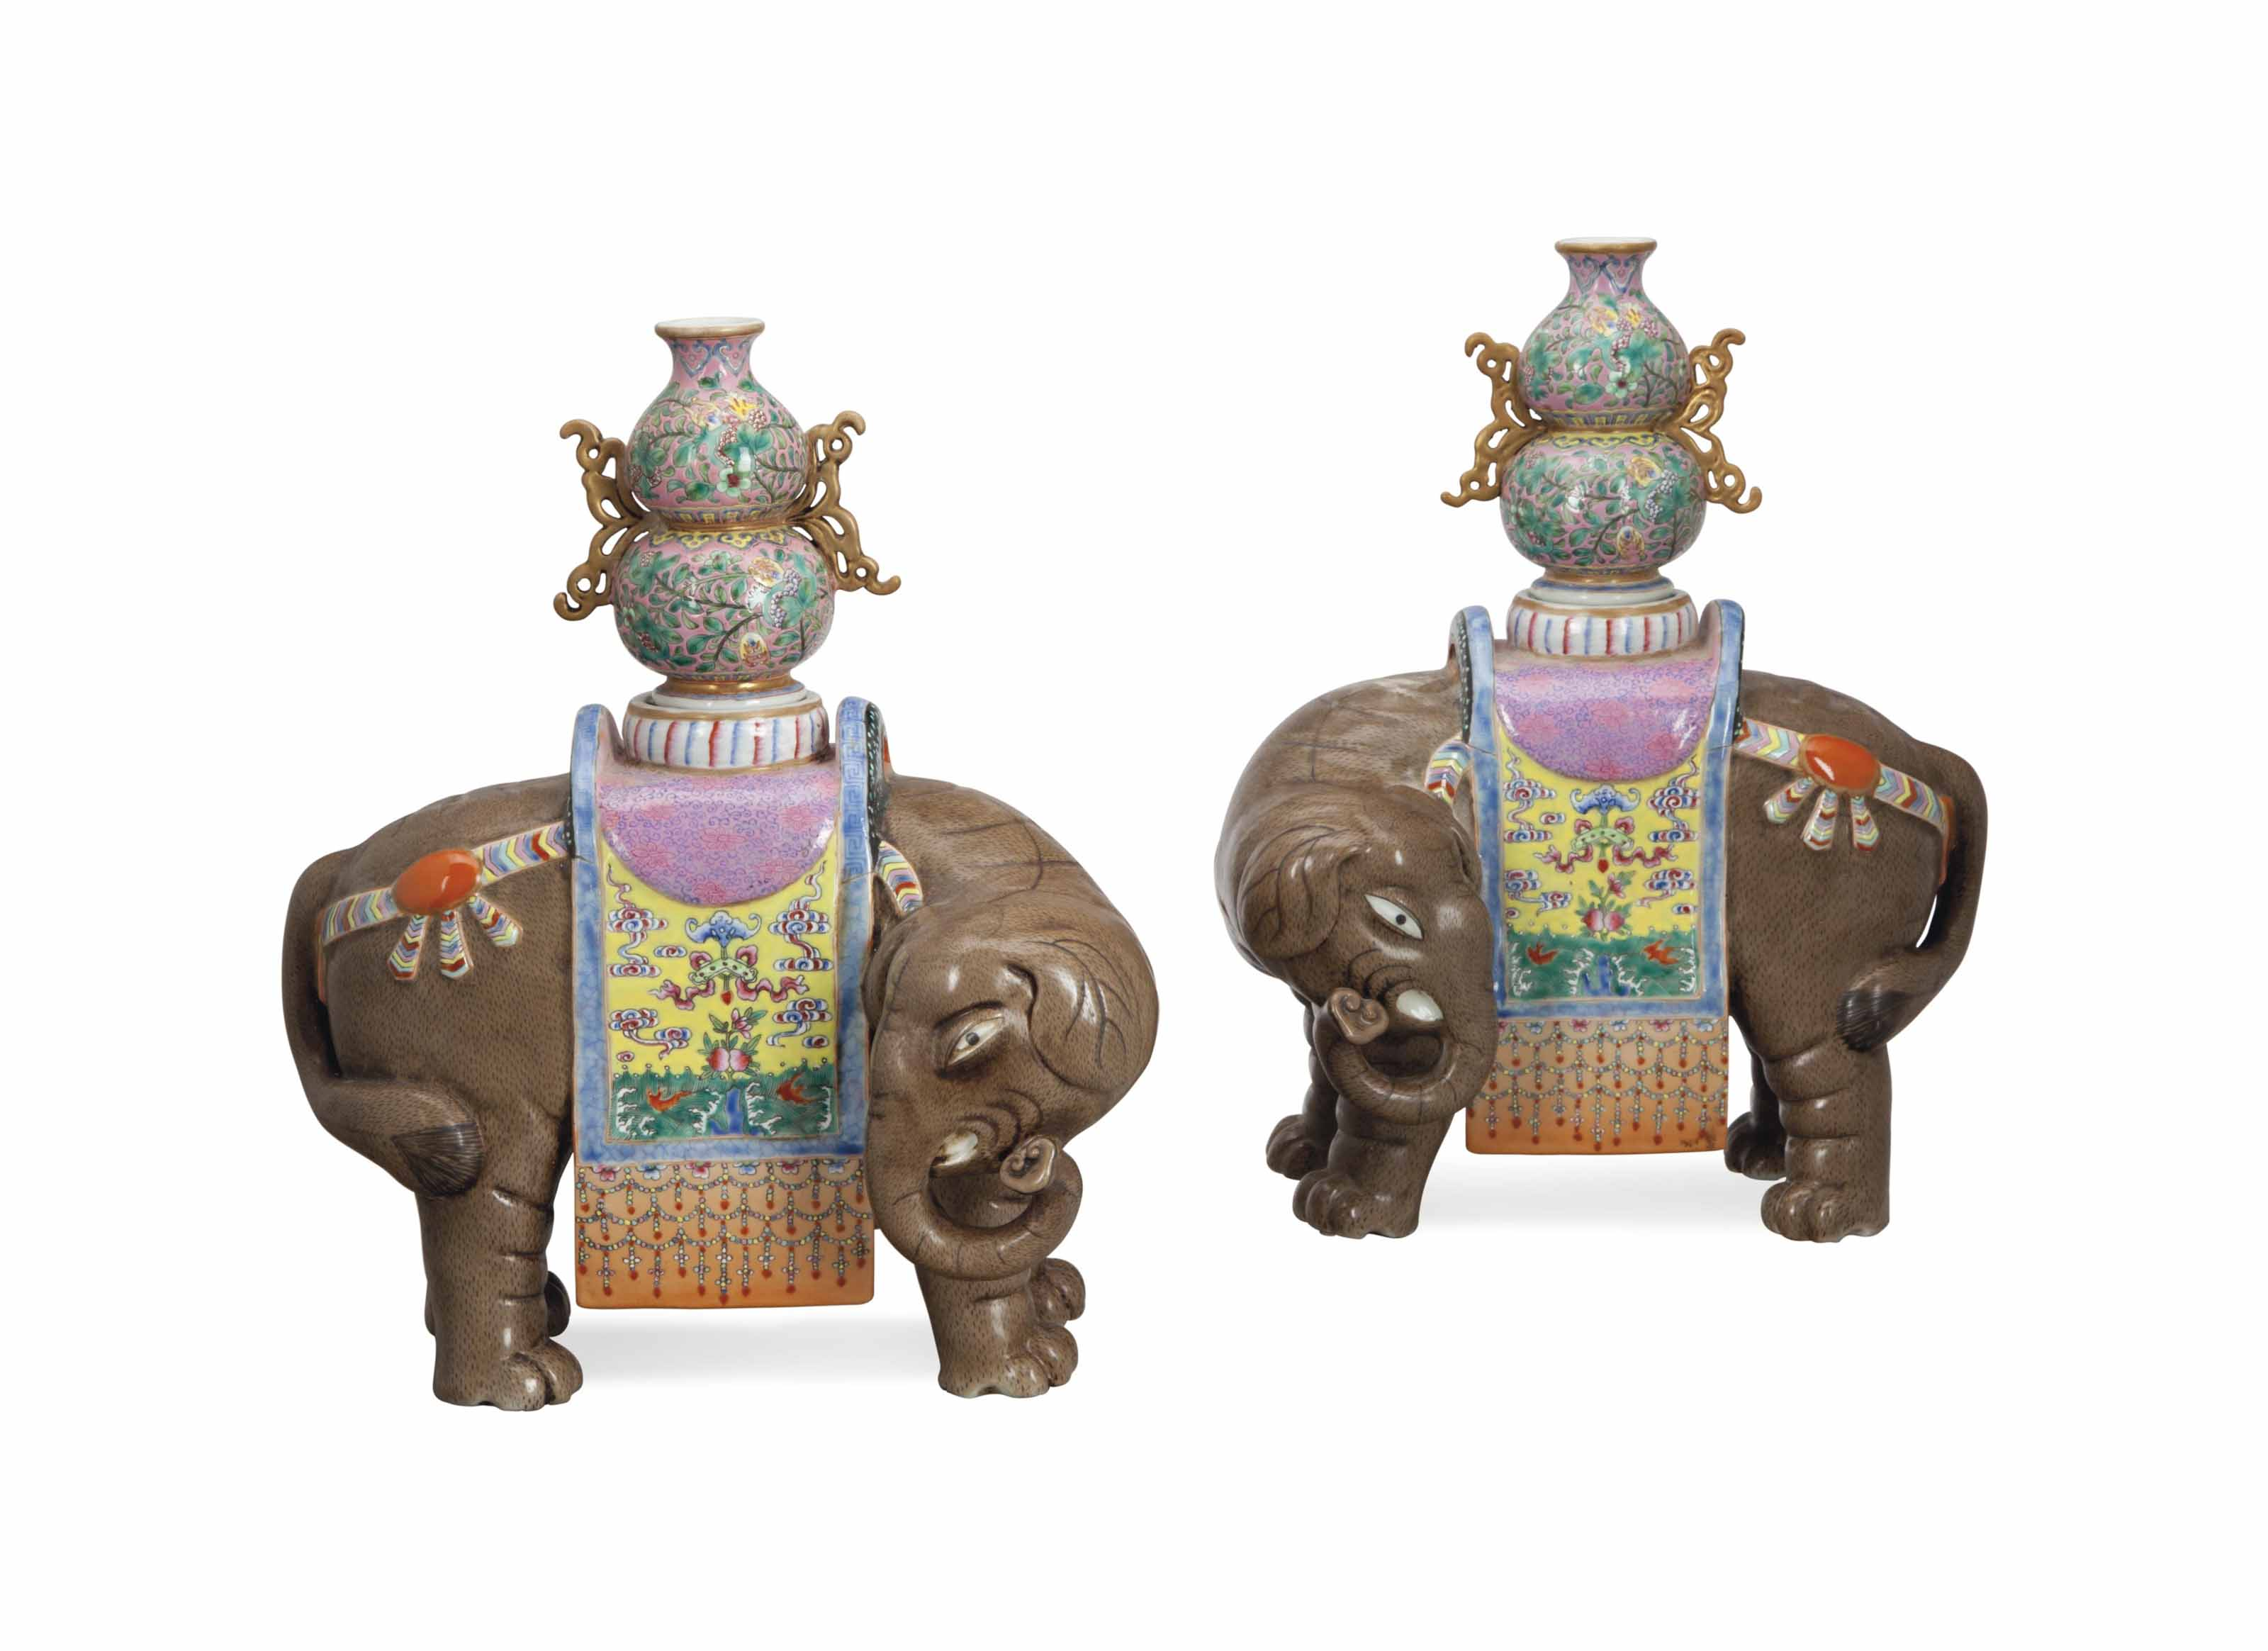 A PAIR OF CHINESE FAMILLE ROSE PORCELAIN ELEPHANTS SUPPORTING VASES